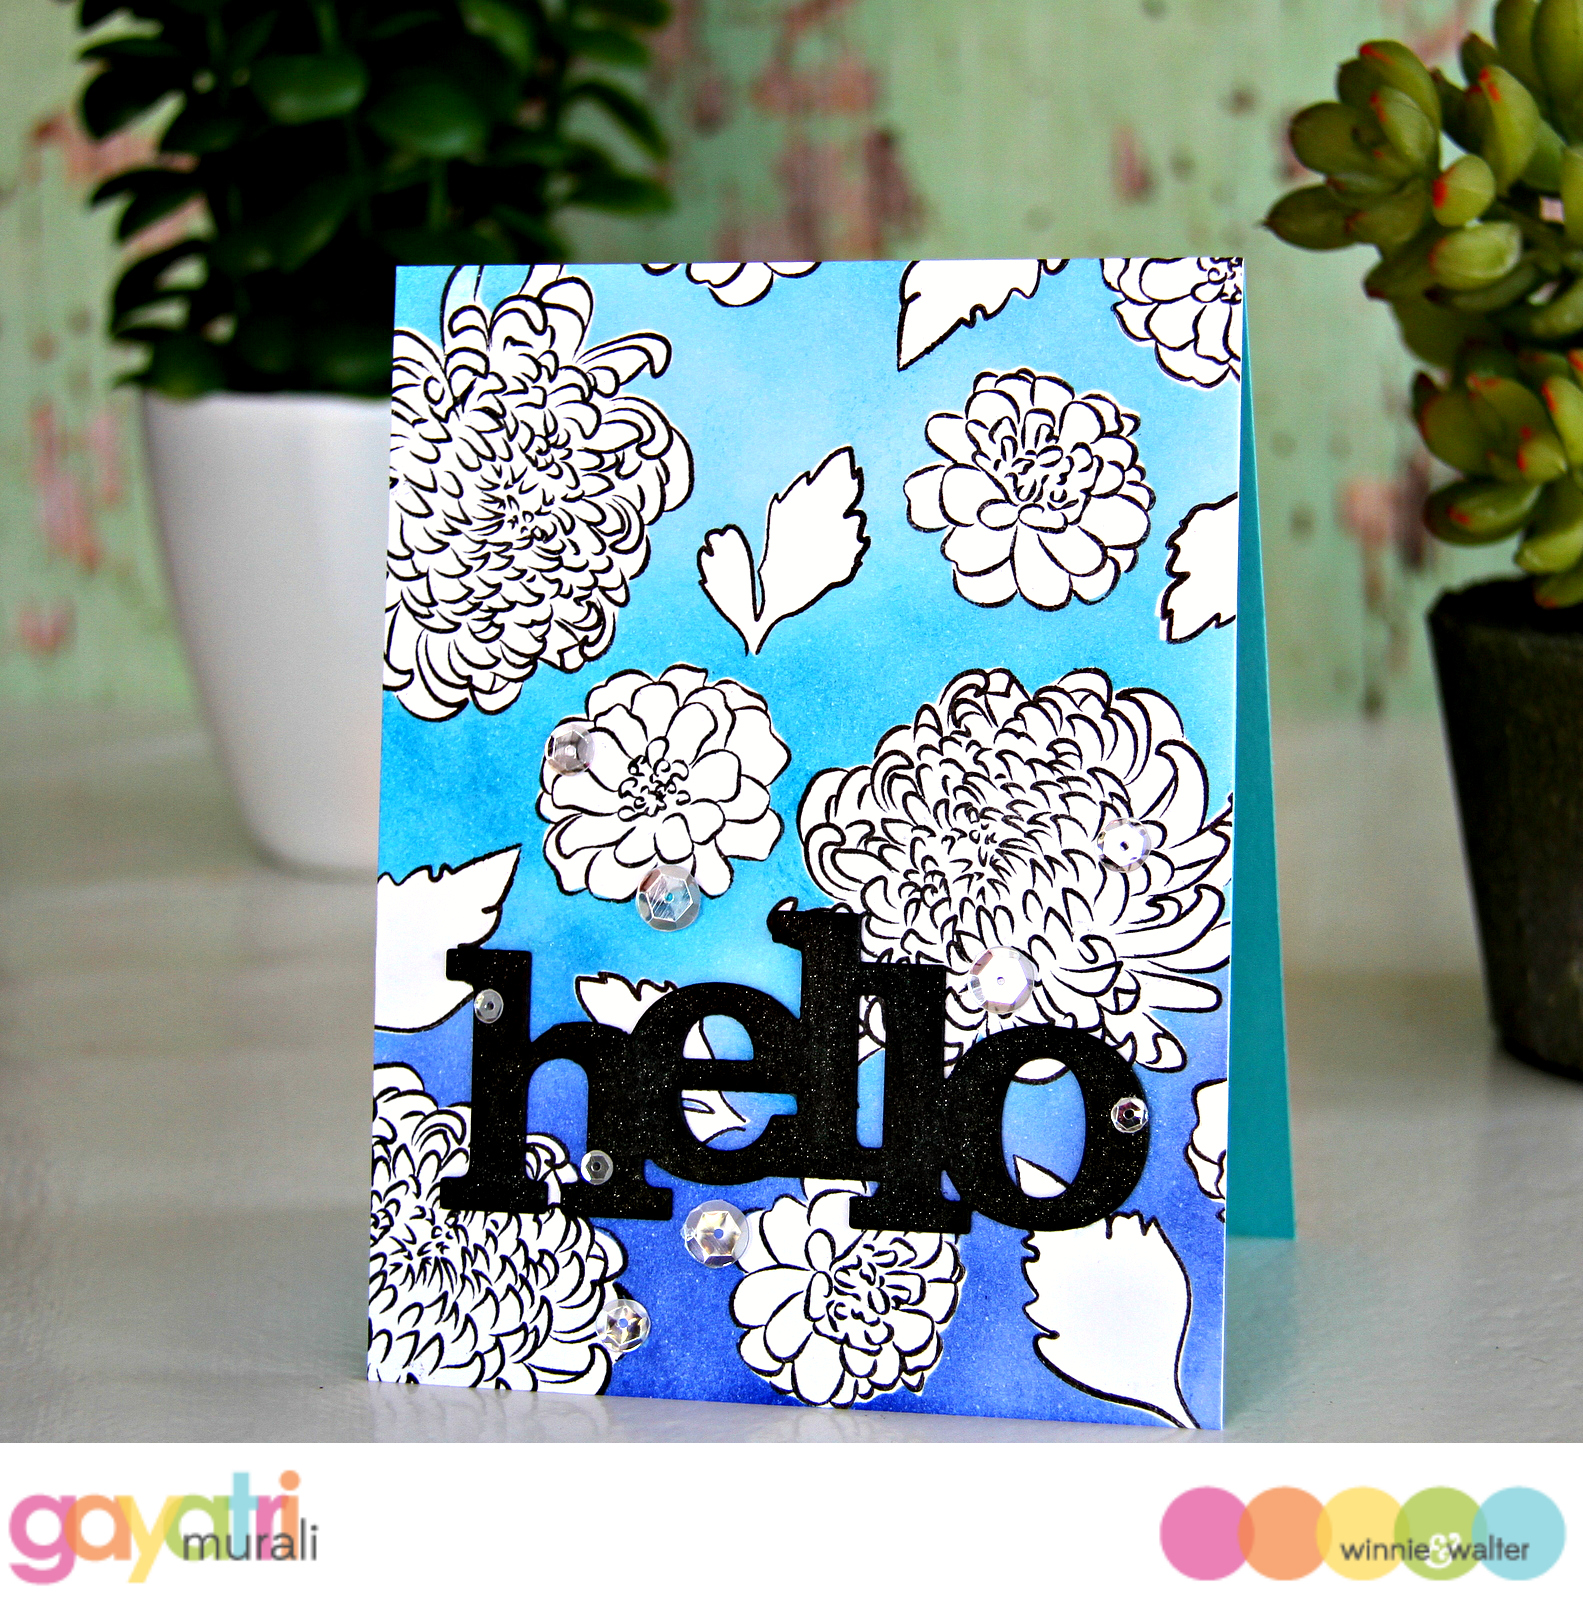 gayatri_Hello card #!